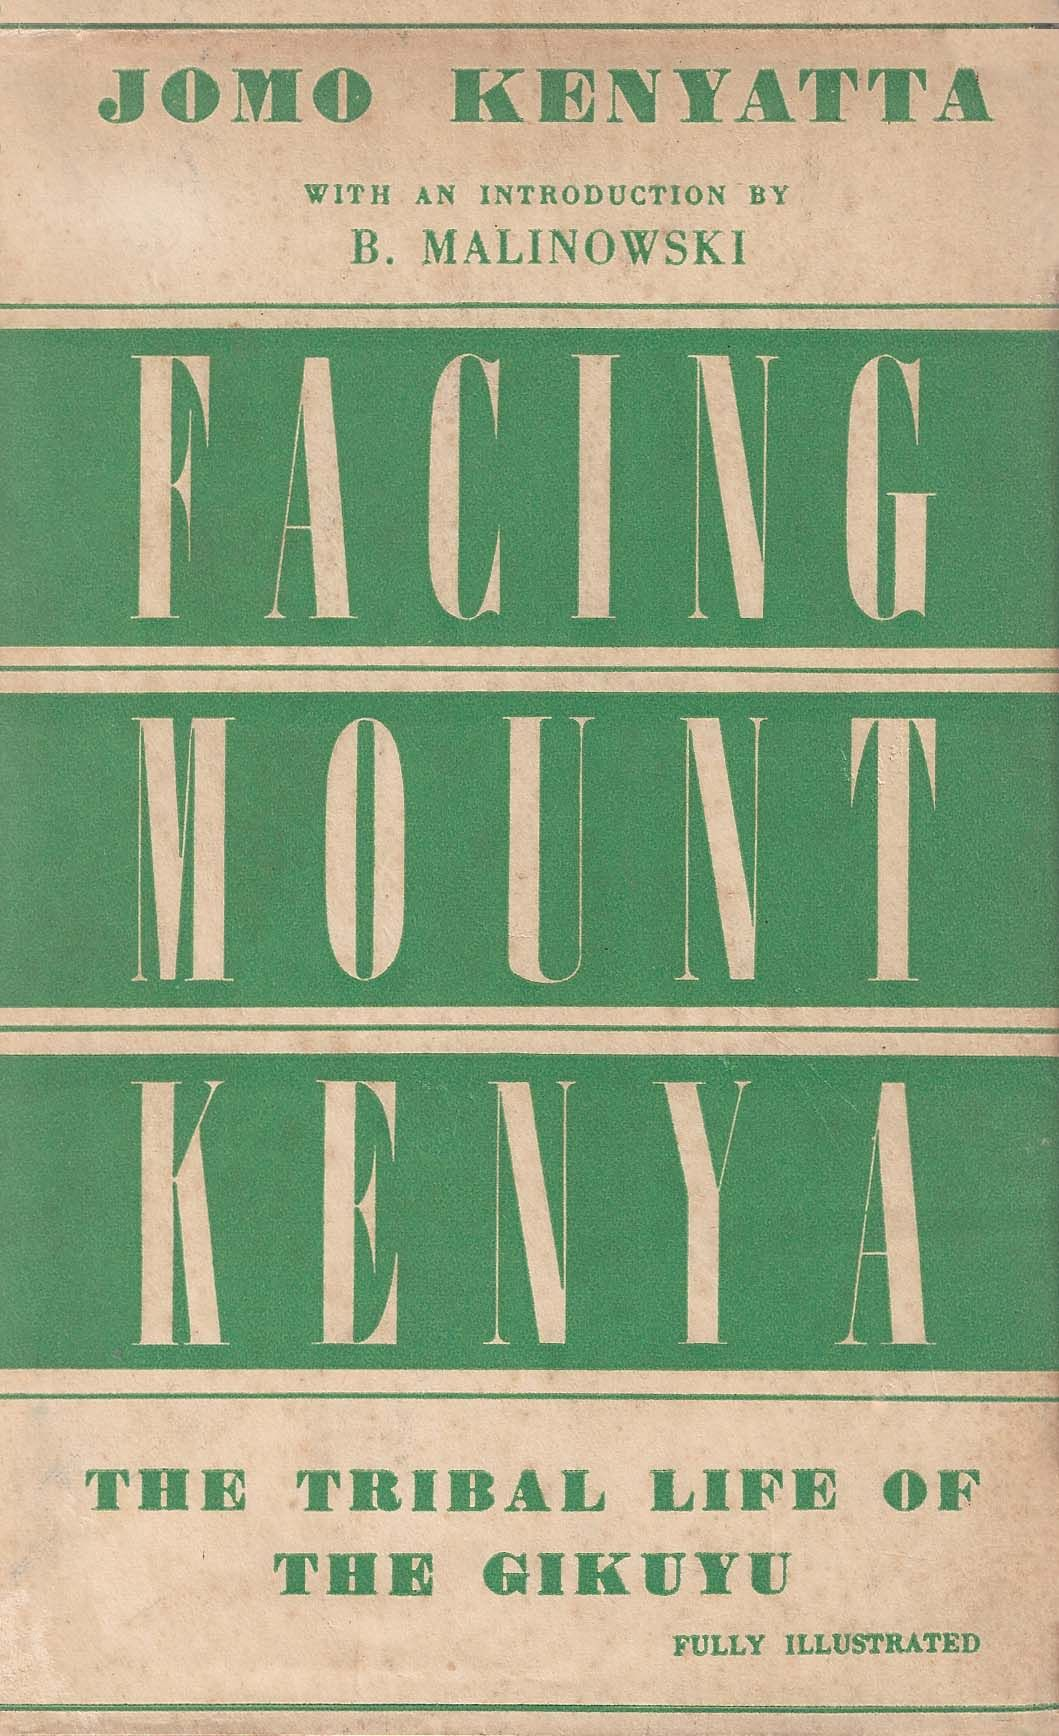 Facing mount kenya jomo kenyatta 1953 jomo kenyatta facing mount kenya the tribal life of the gikuyu by jomo kenyatta with an introduction by b fandeluxe Images